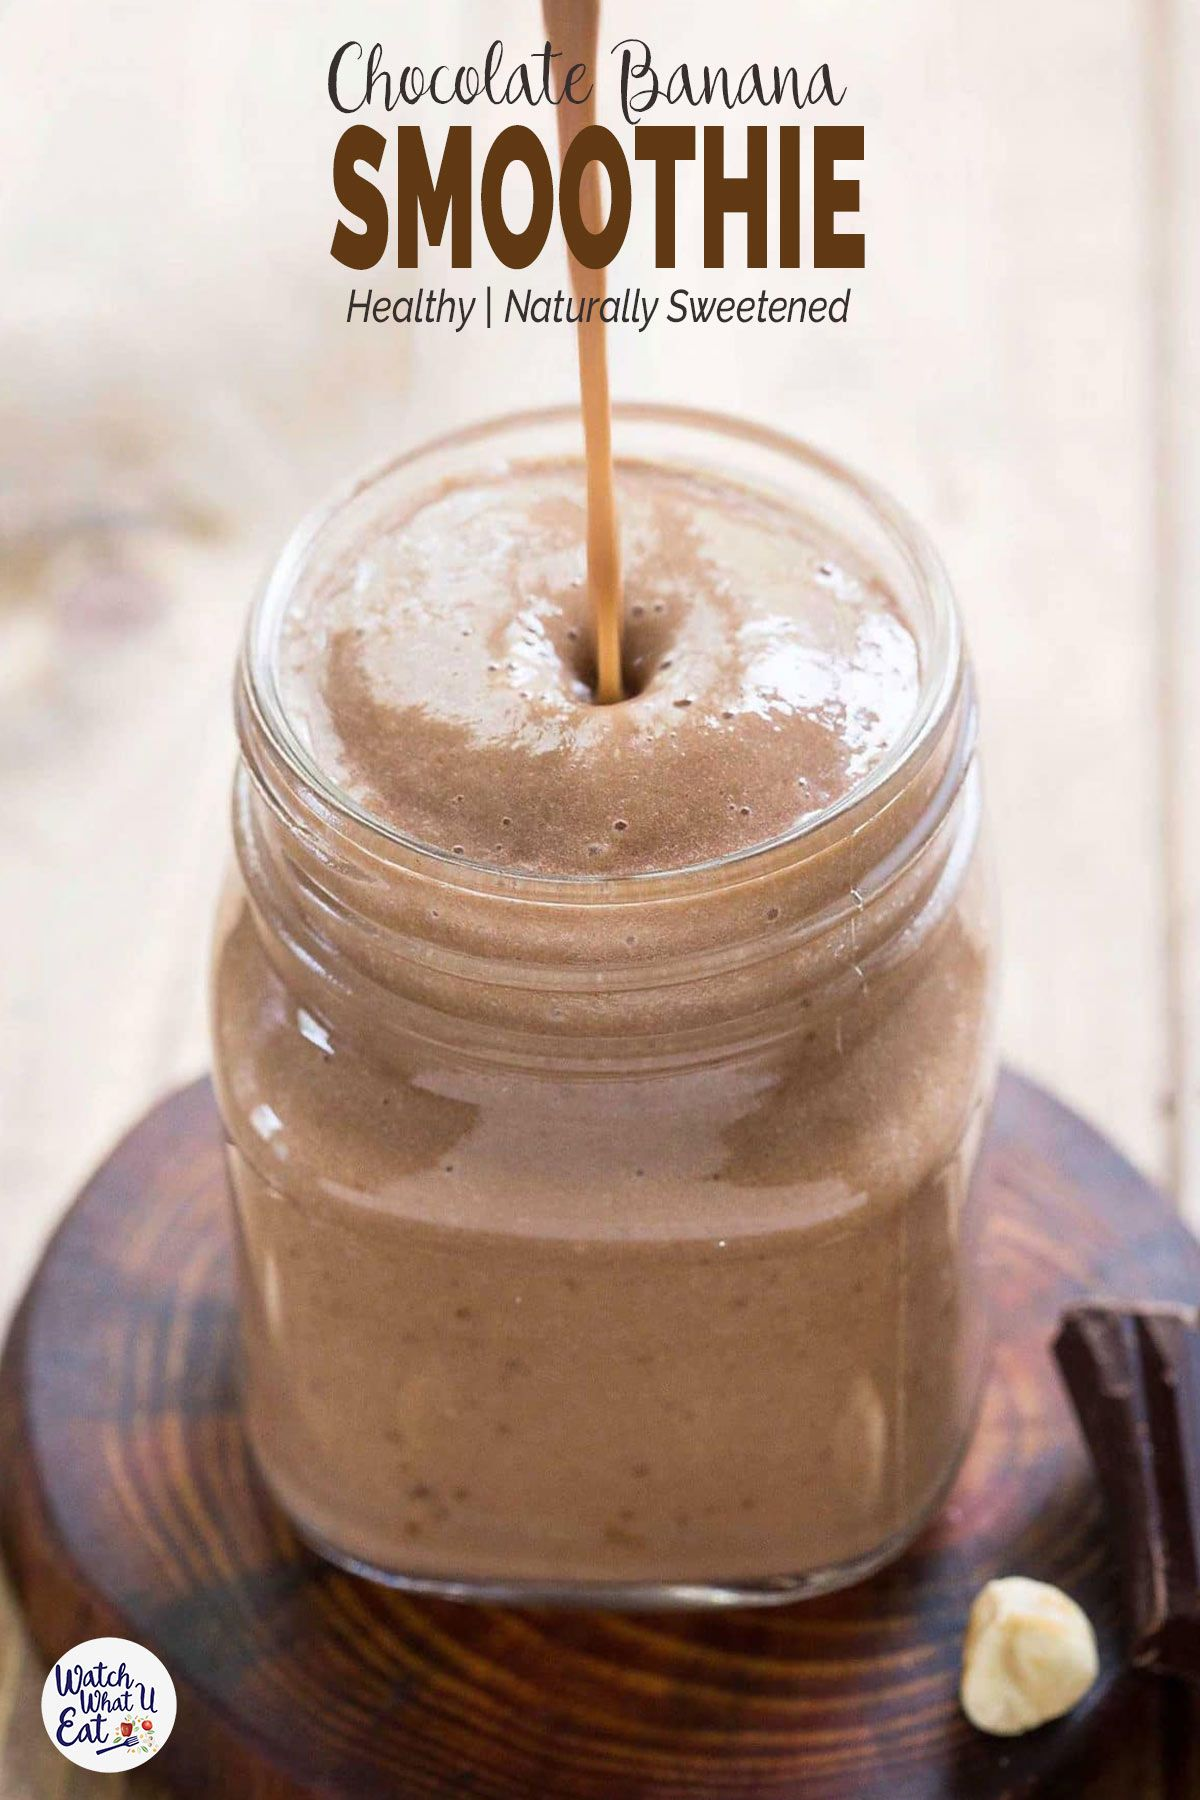 Healthy Chocolate Banana Smoothie #chocolatebananasmoothie